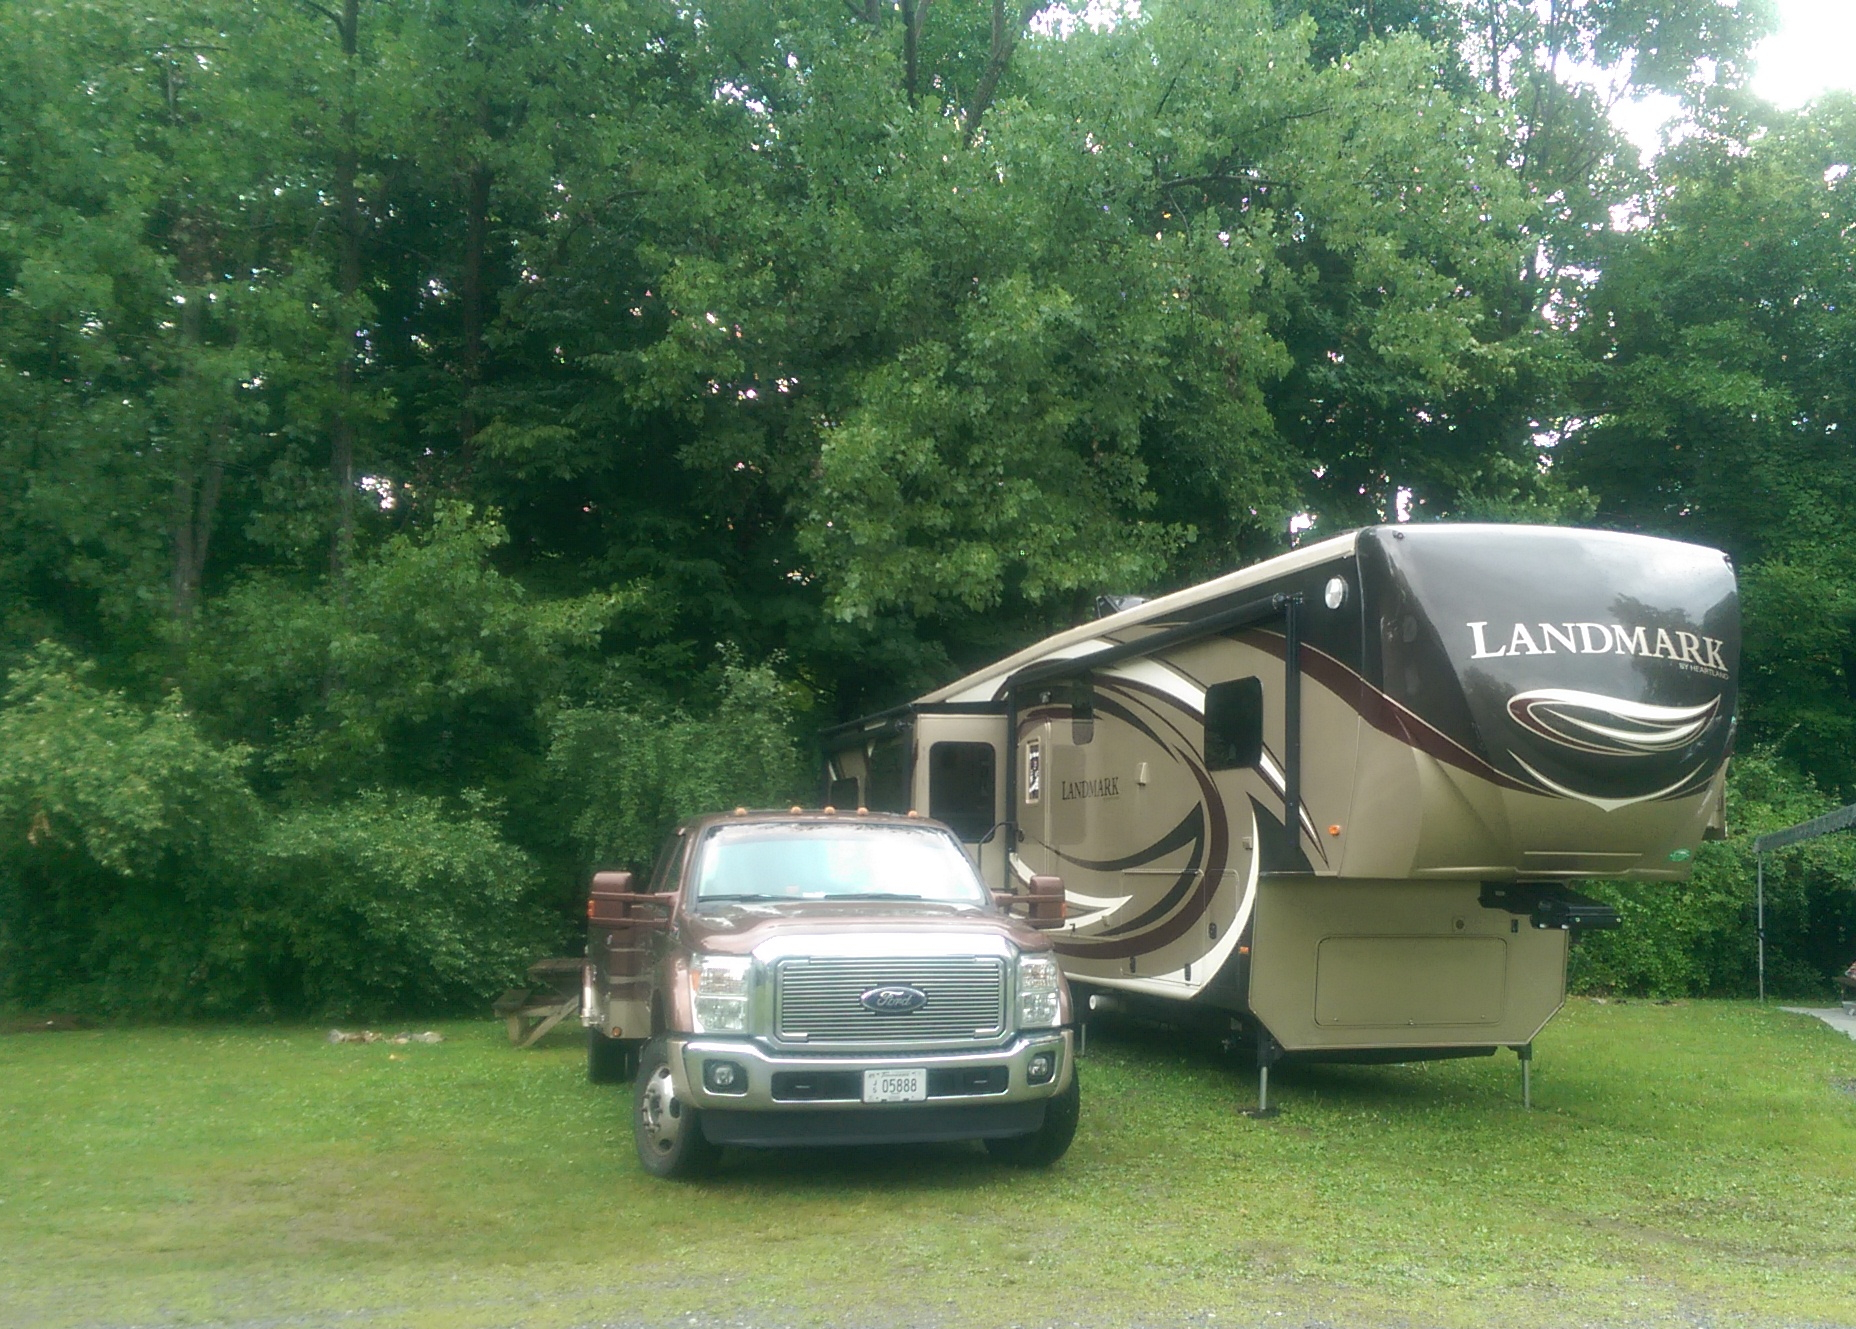 Sylvan Lake Beach Park - Hopewell Junction, NY - Site M15